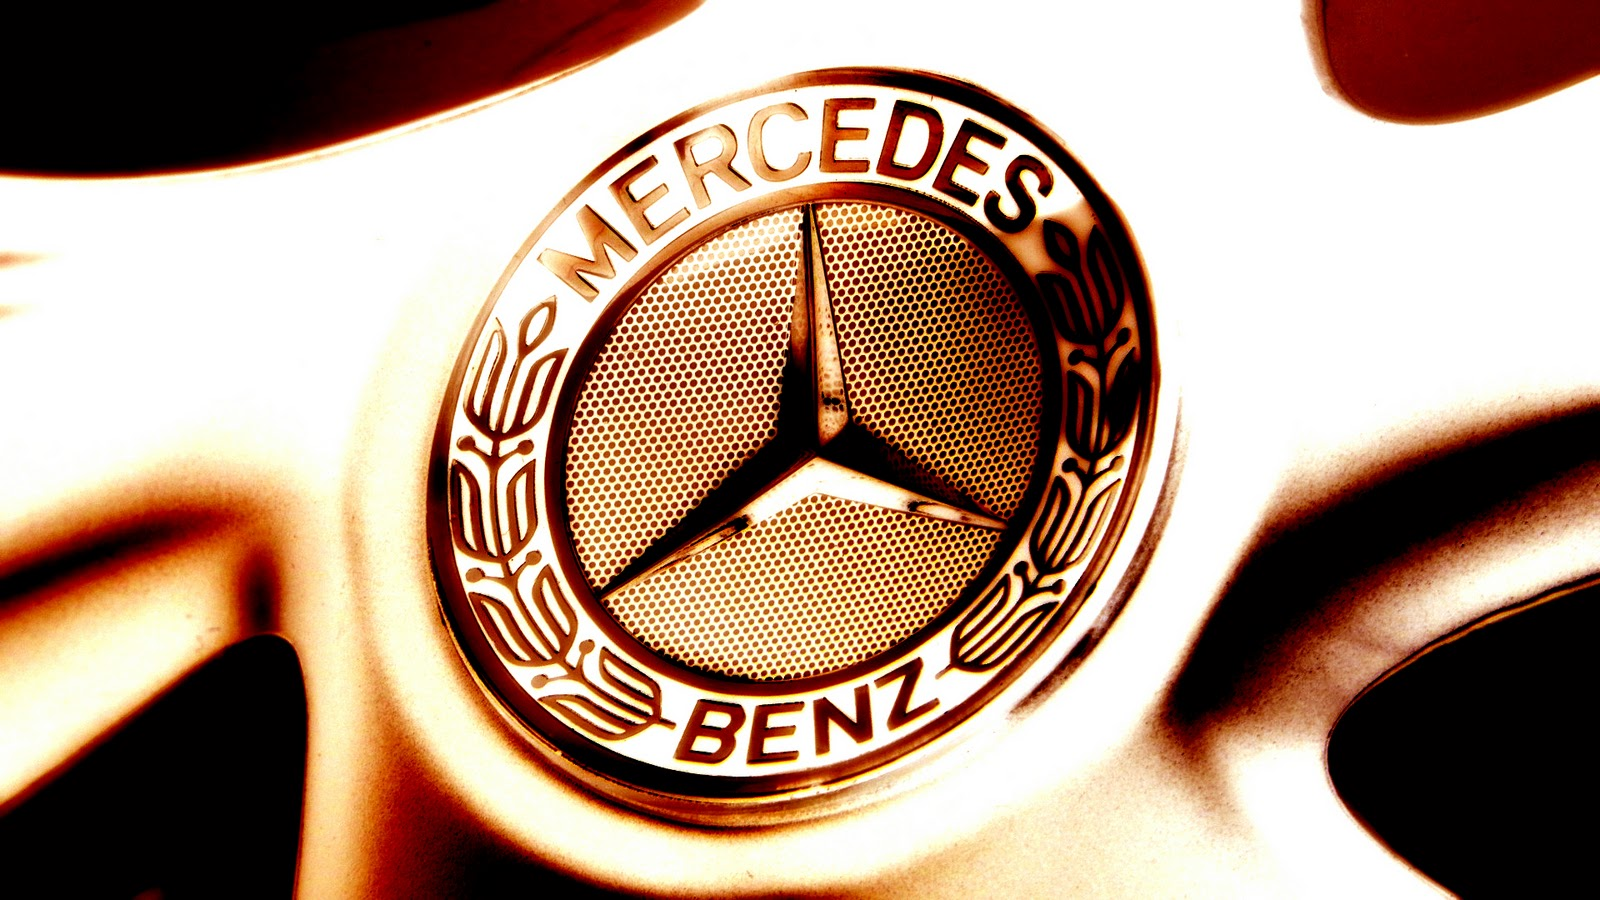 Mercedes Benz Apple Watch App  ing Soon together with Zeitlose Logos further 2011 Super duty additionally German Car Logos also Pentagram 18403. on mercedes benz logo meaning